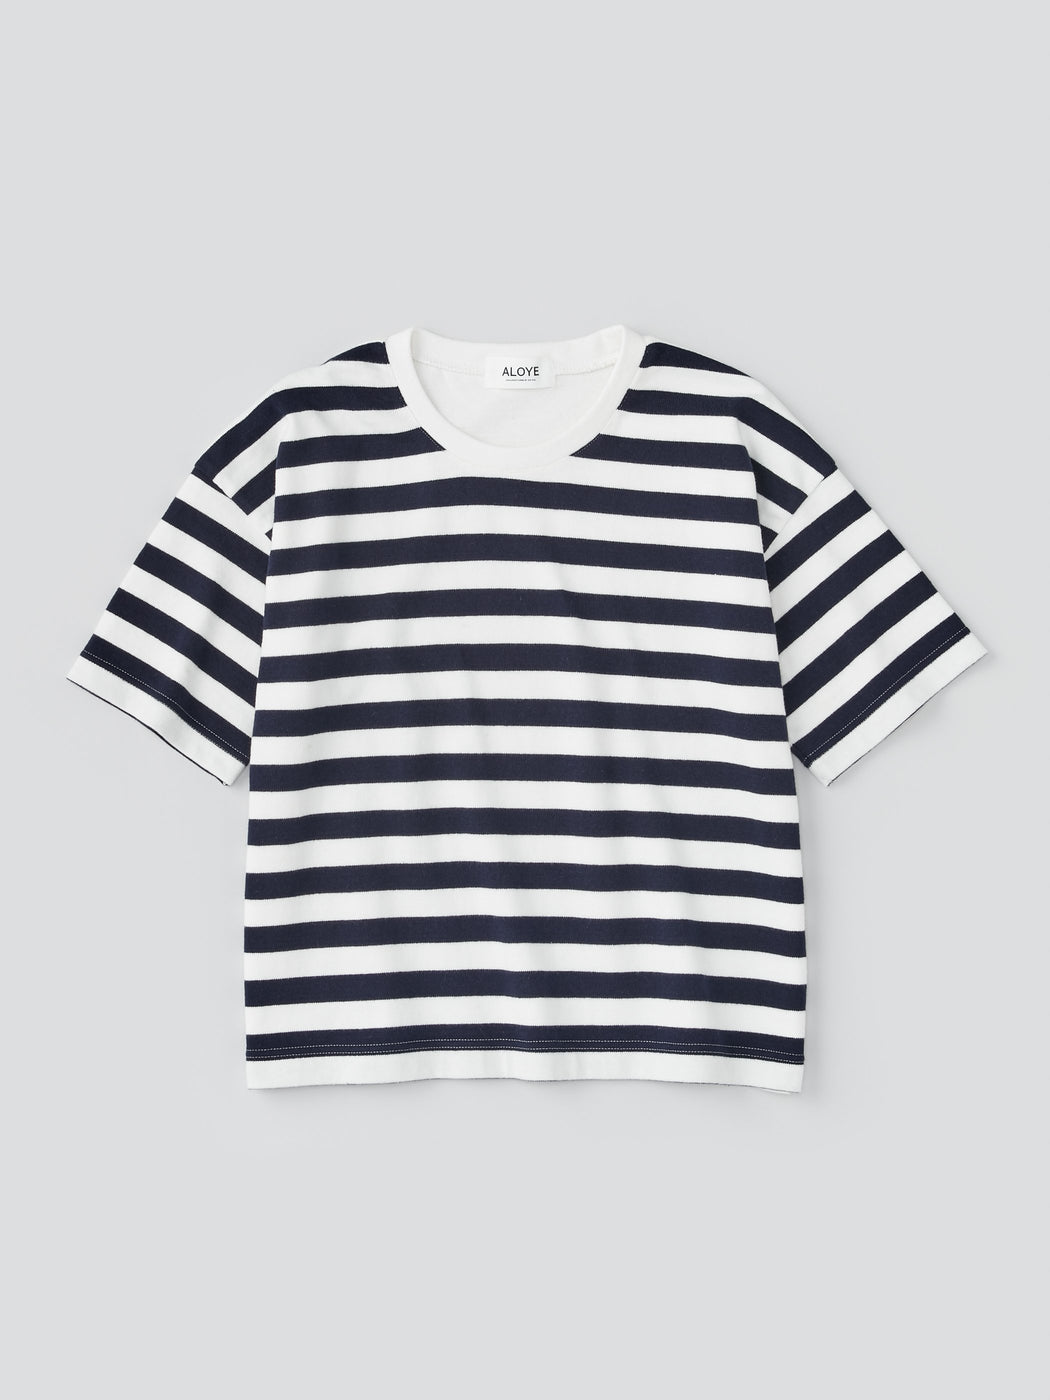 ALOYE G.F.G.S. Women's Cotton Knitted Wide T-shirt Navy Stripe-Off White Back